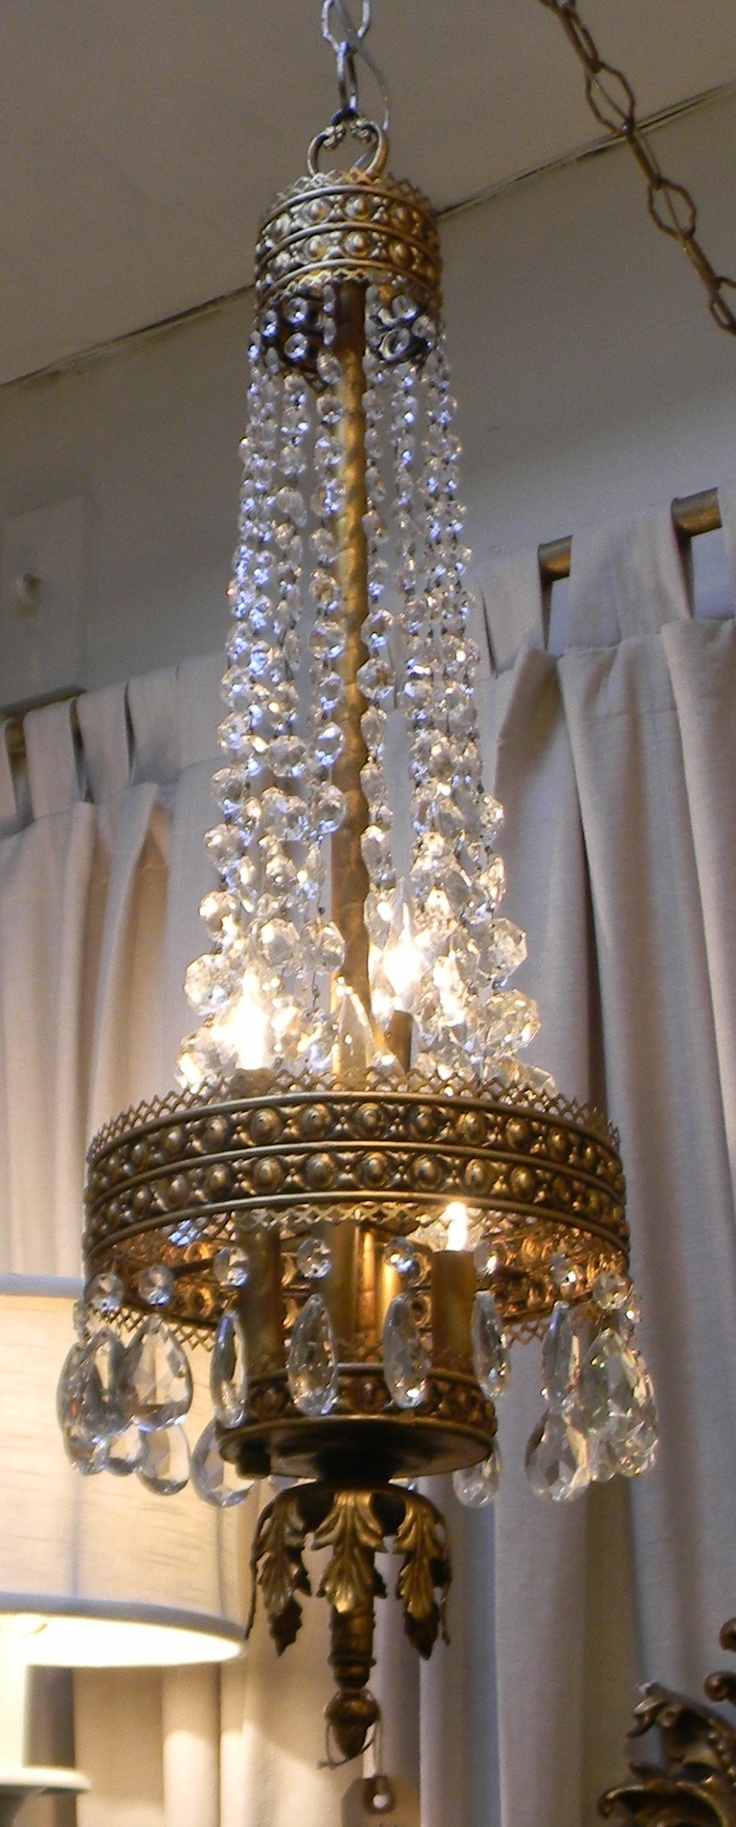 387 Best Chandeliers Crystals Images On Pinterest Crystal Throughout Lampshade Chandeliers (Image 3 of 25)